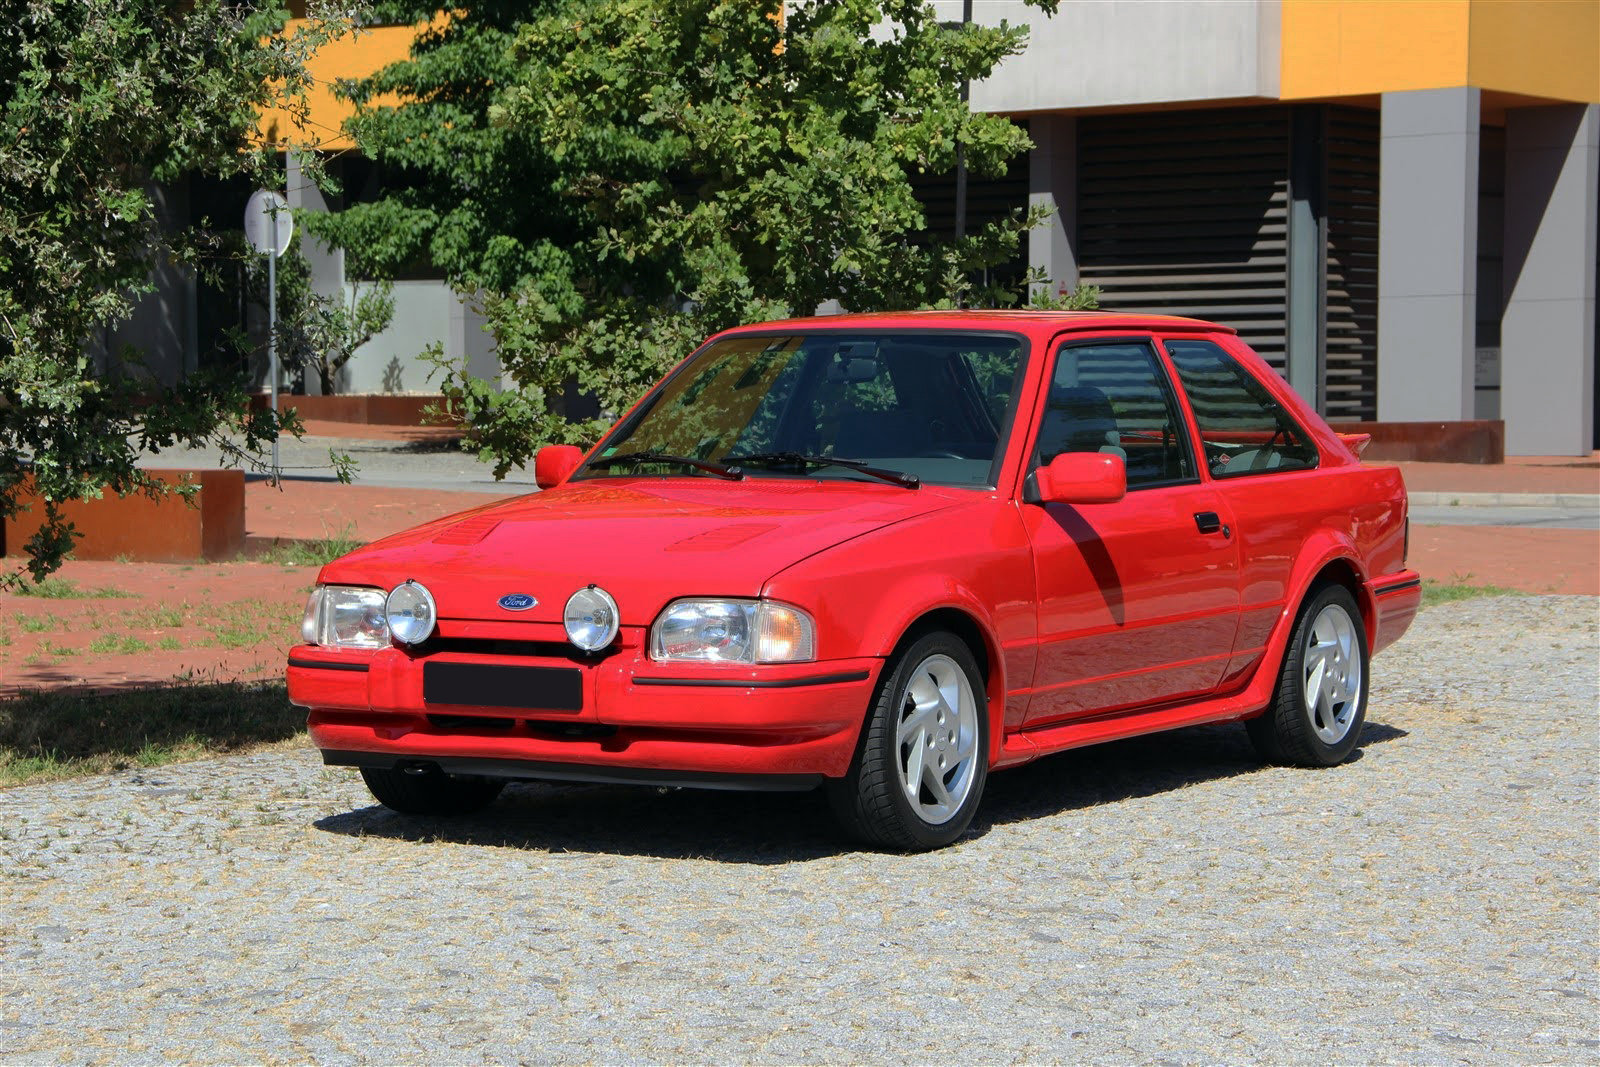 1989 Ford Escort RS Turbo For Sale (picture 1 of 6)